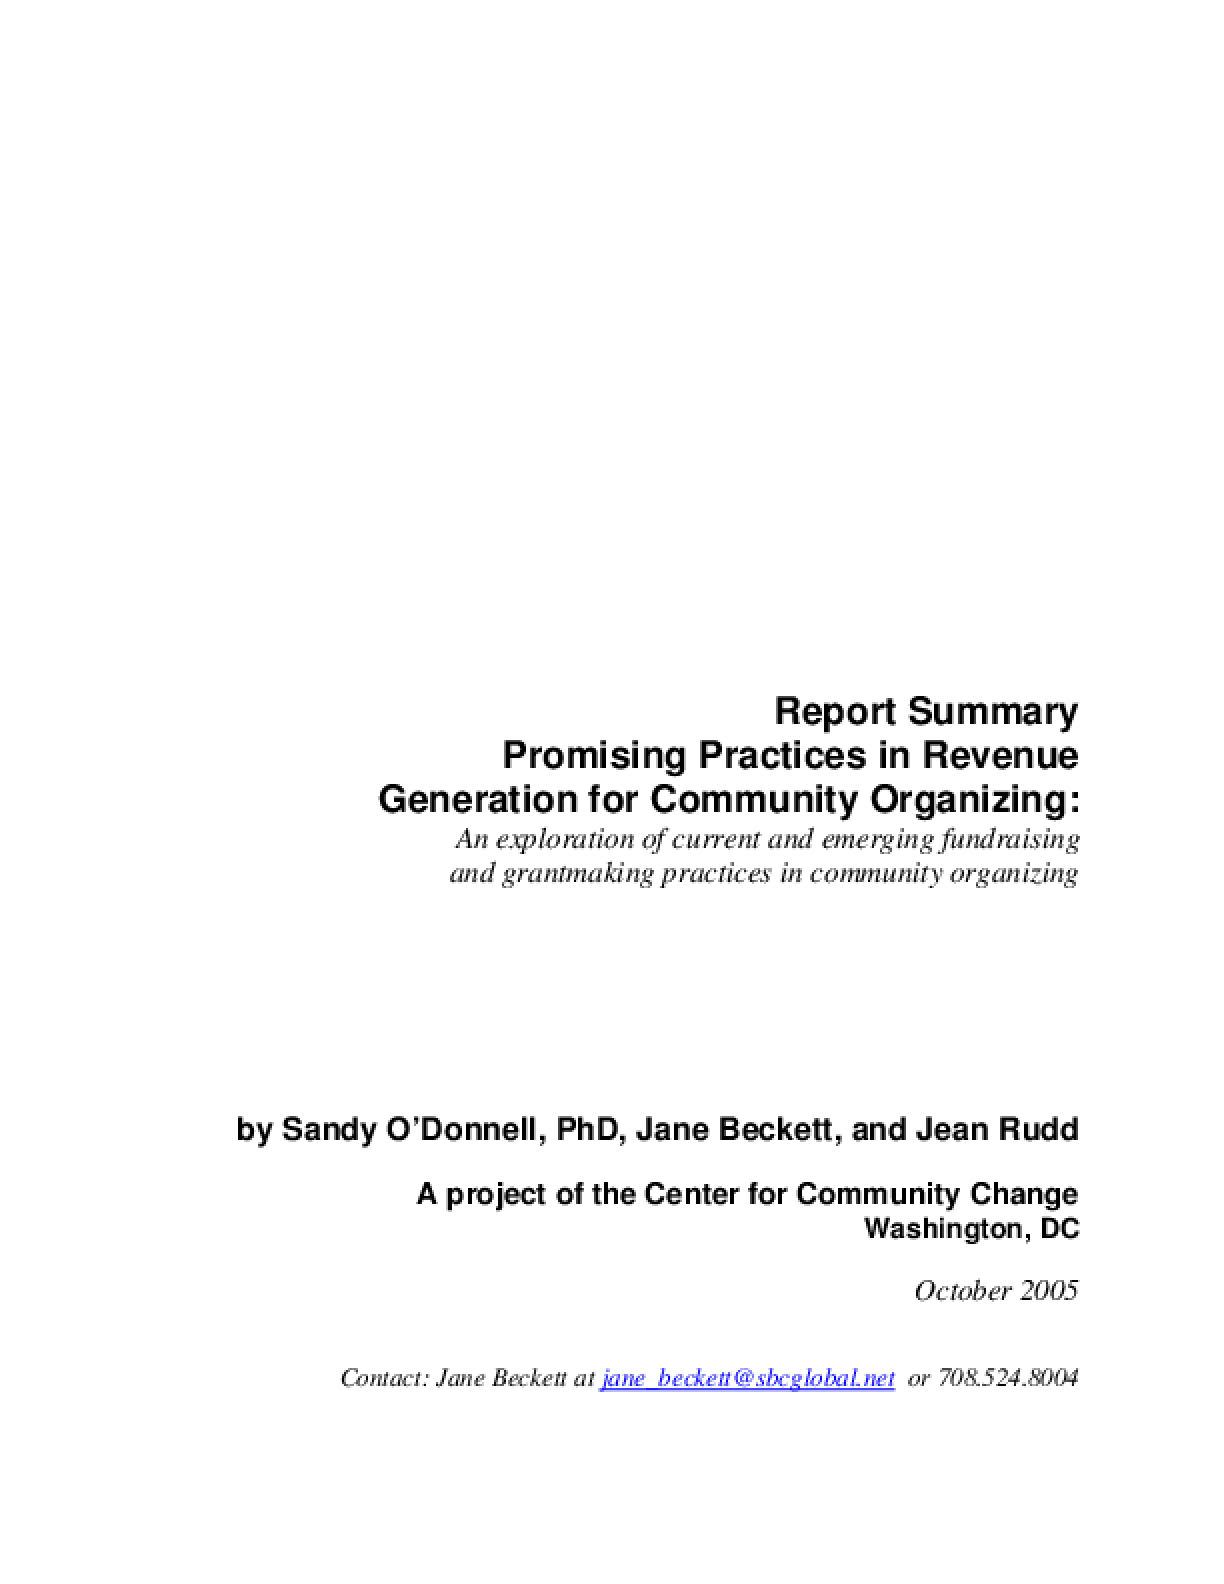 Promising Practices in Revenue Generation for Community Organizing: an Exploration of Current and Emerging Fundraising and Grantmaking Practices in Community Organizing